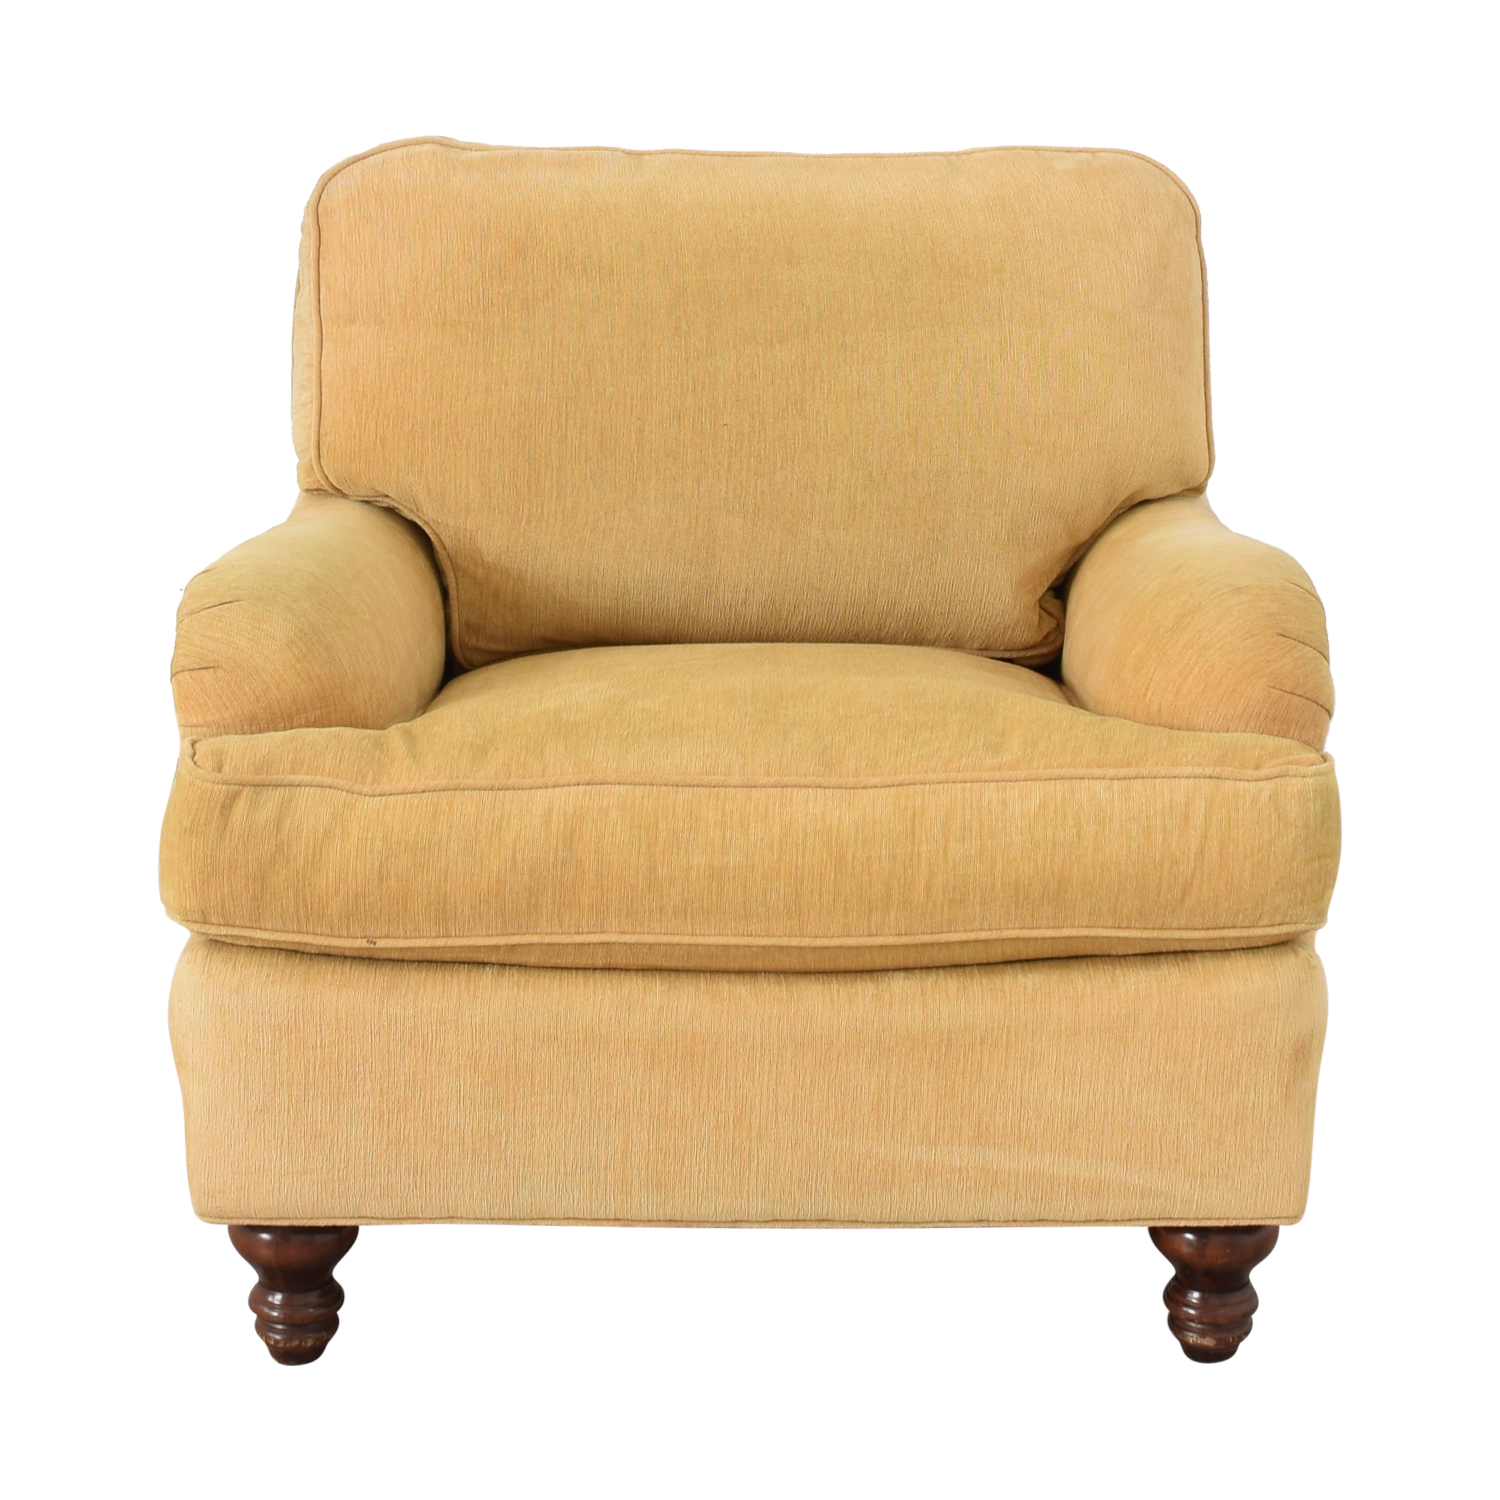 Upholstered Side Chair price